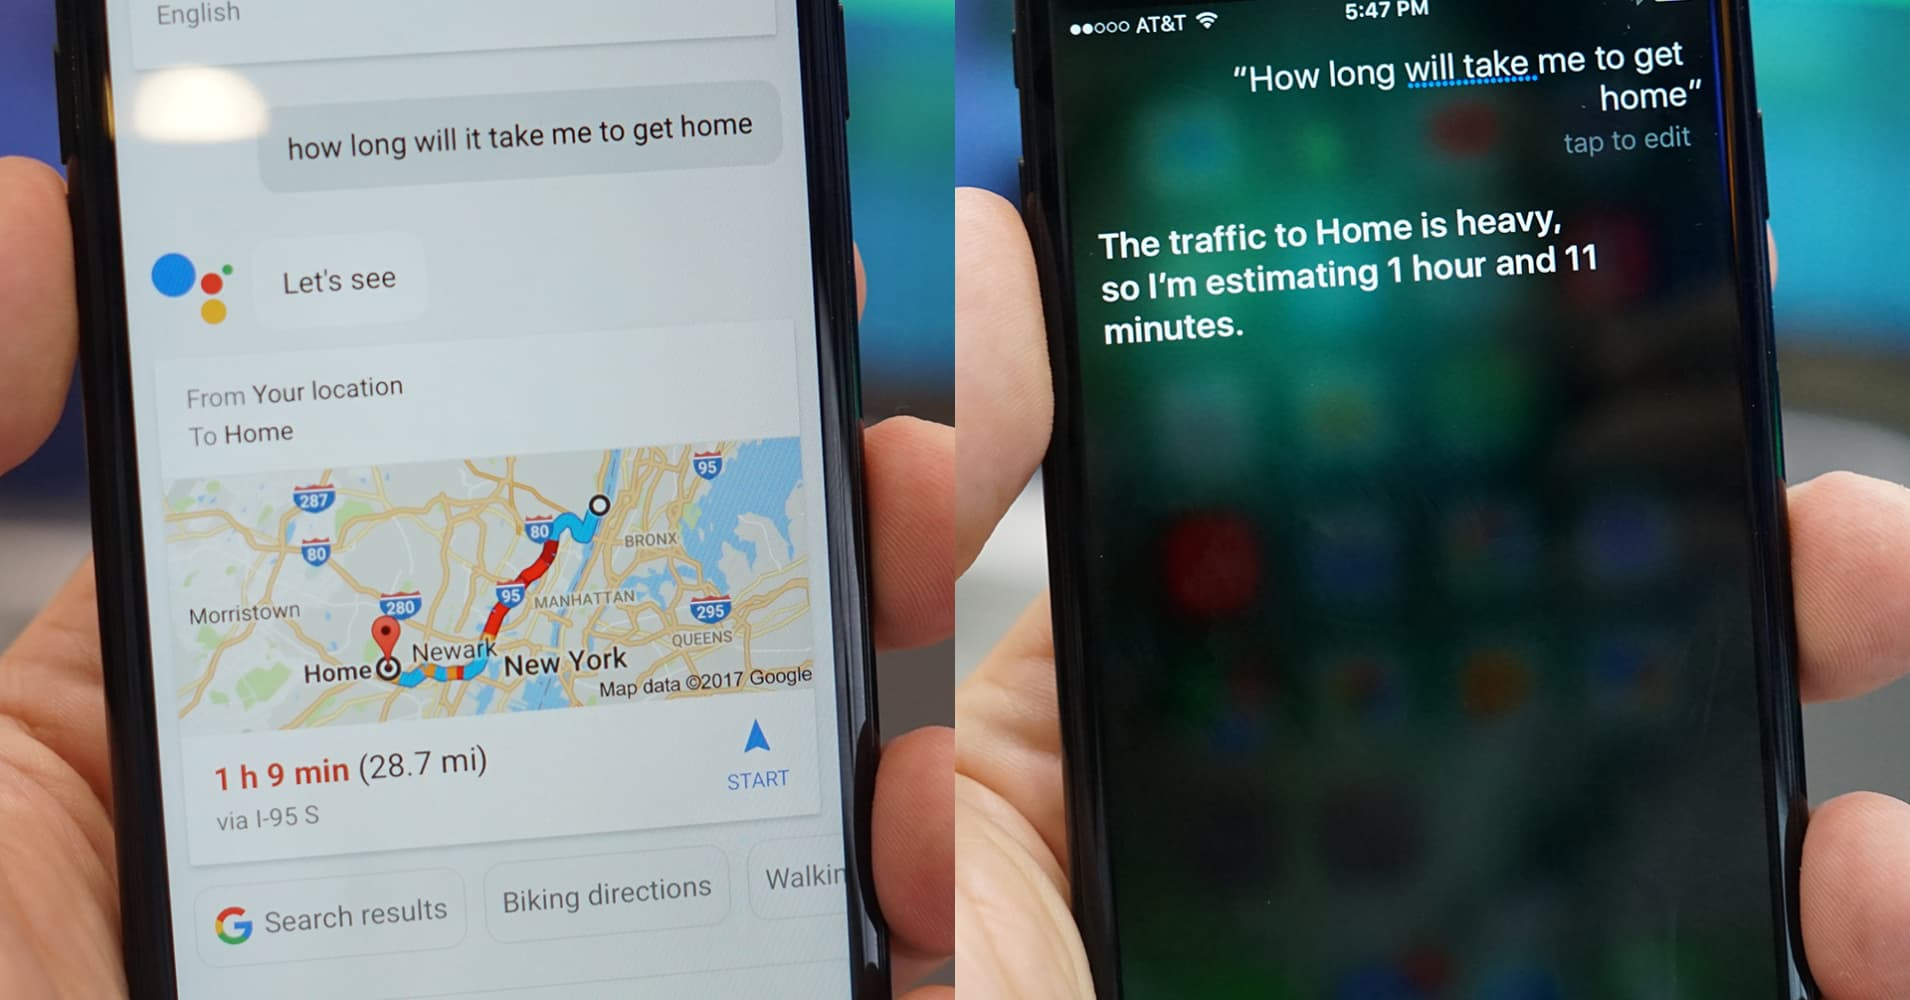 Siri vs Google Assistant on iPhone: Watch Google win on Apple's home turf